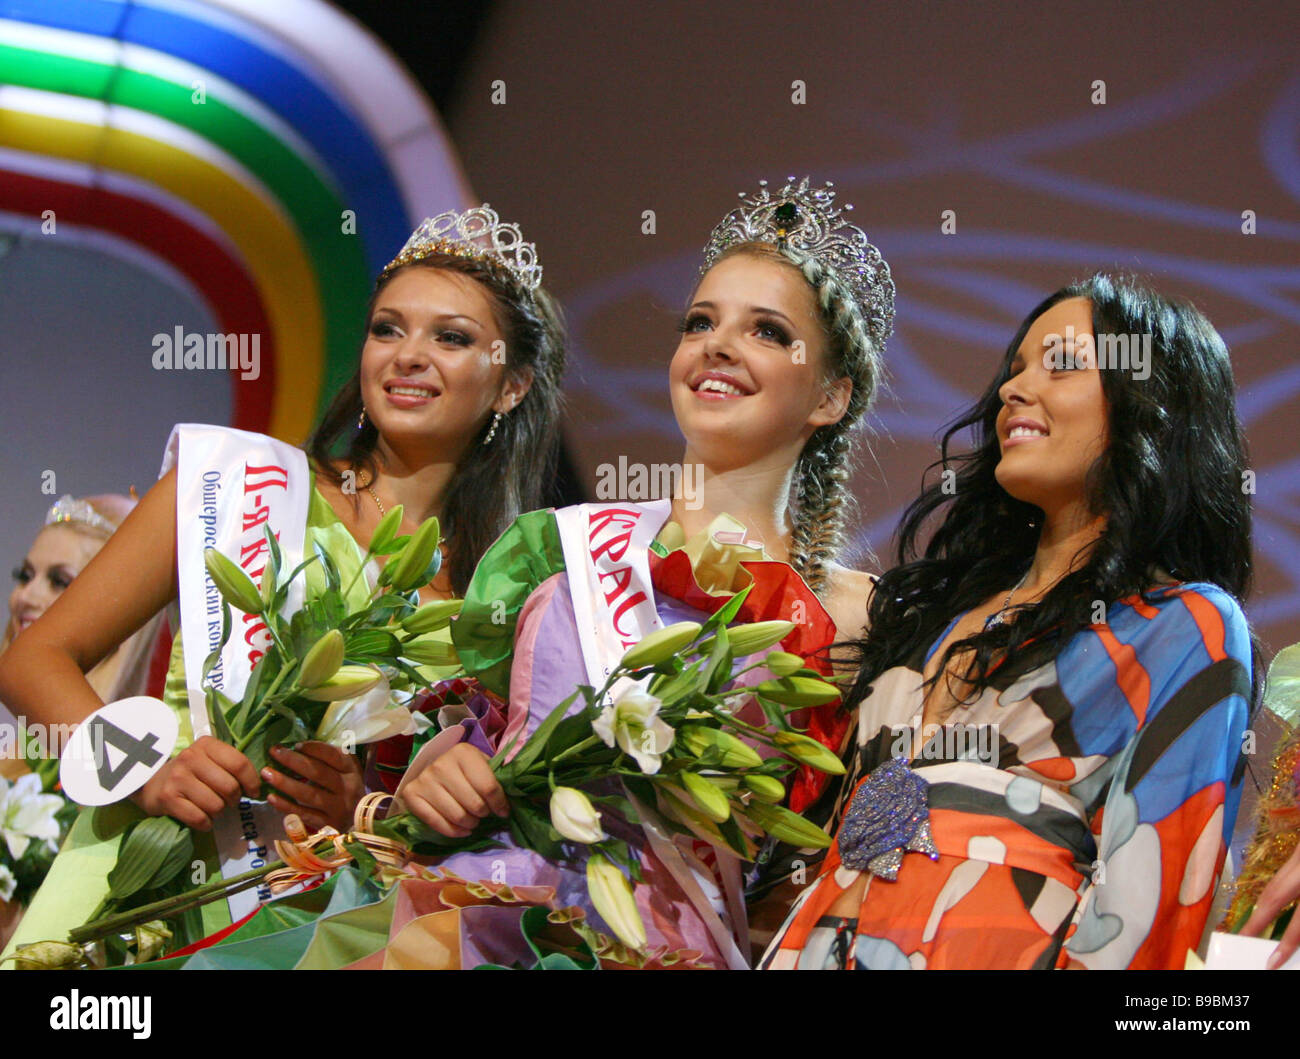 Muscovite Alexandra Mazur center 19 wins the Russian Beauty contest - Stock Image